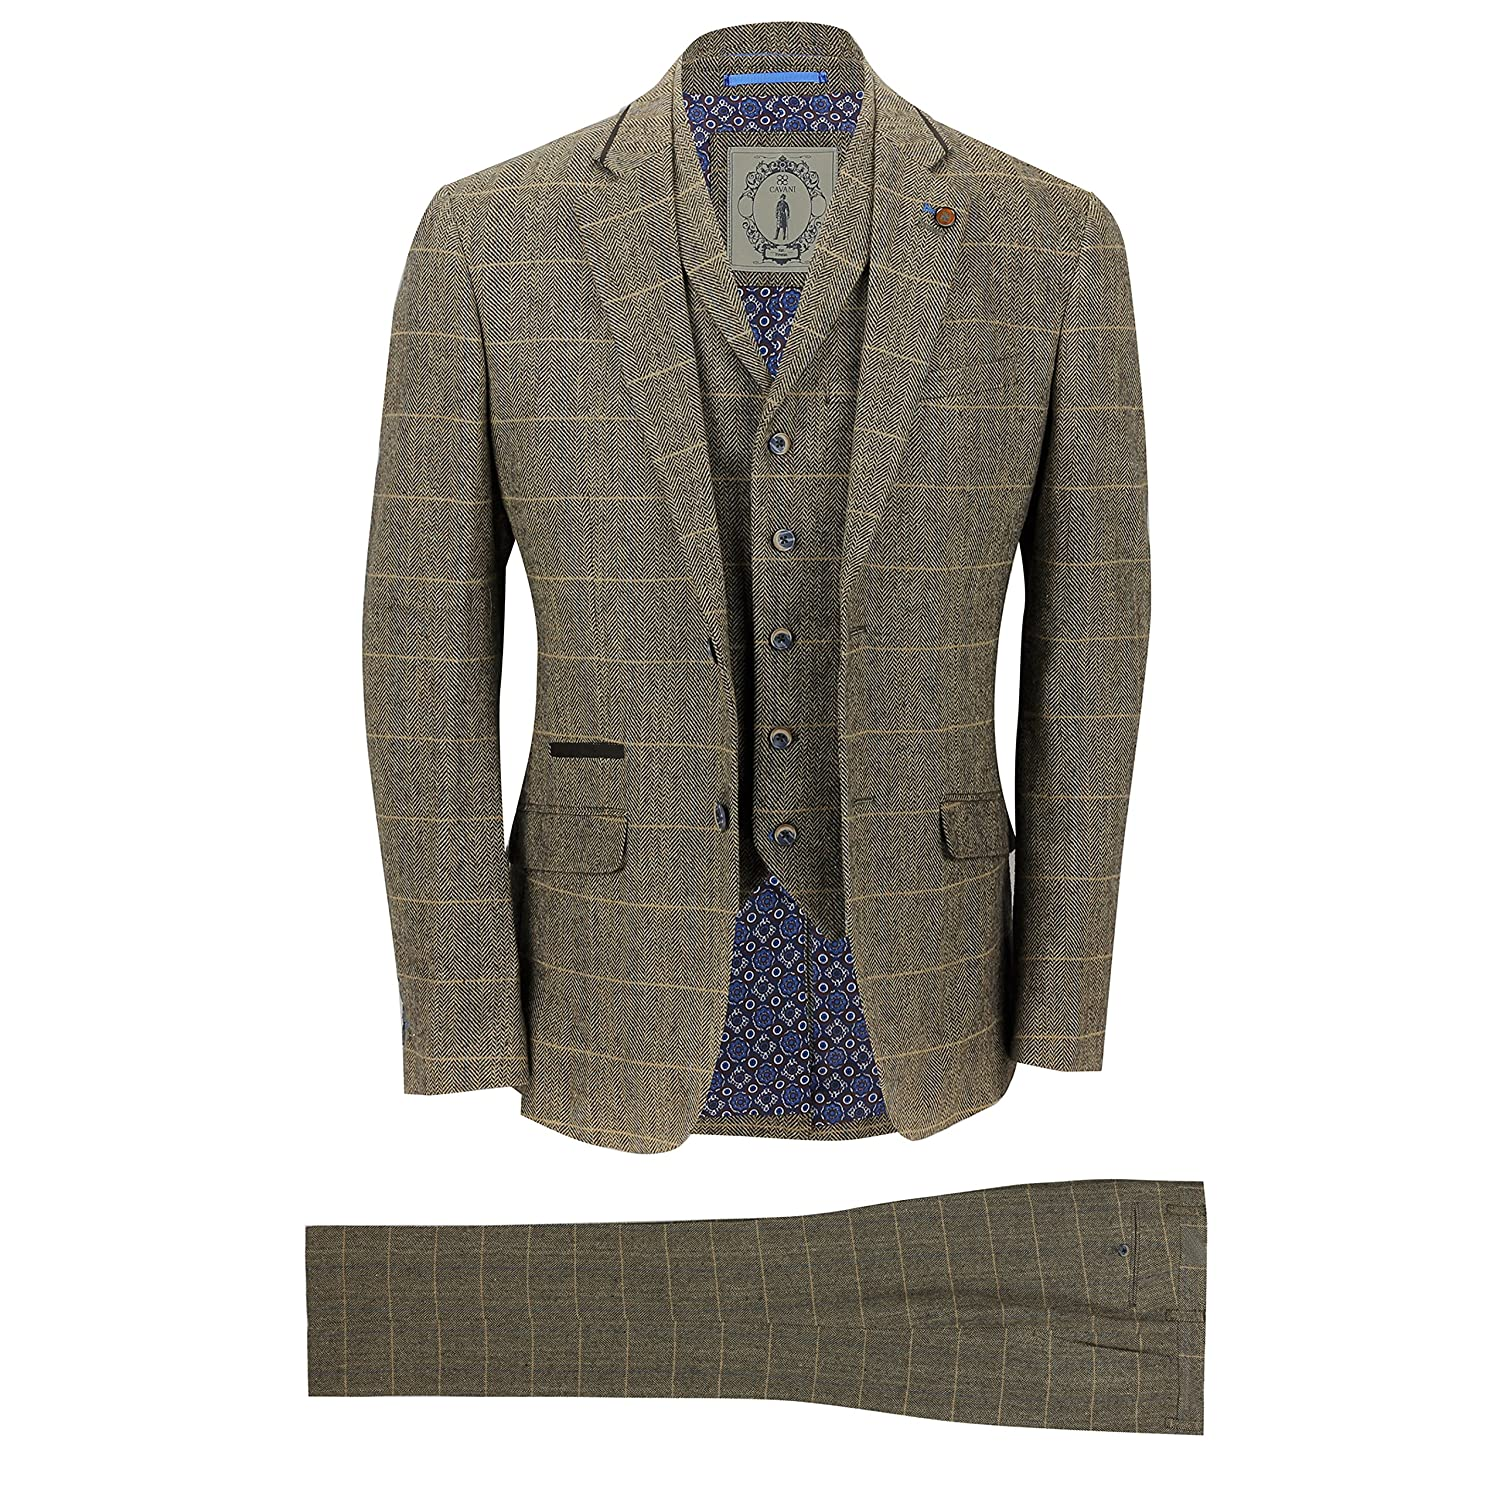 Cavani Mens 3 Piece Tweed Suit Vintage Tan Brown Herringbone Check Retro Slim Fit Jacket, Waistcoat, Trousers